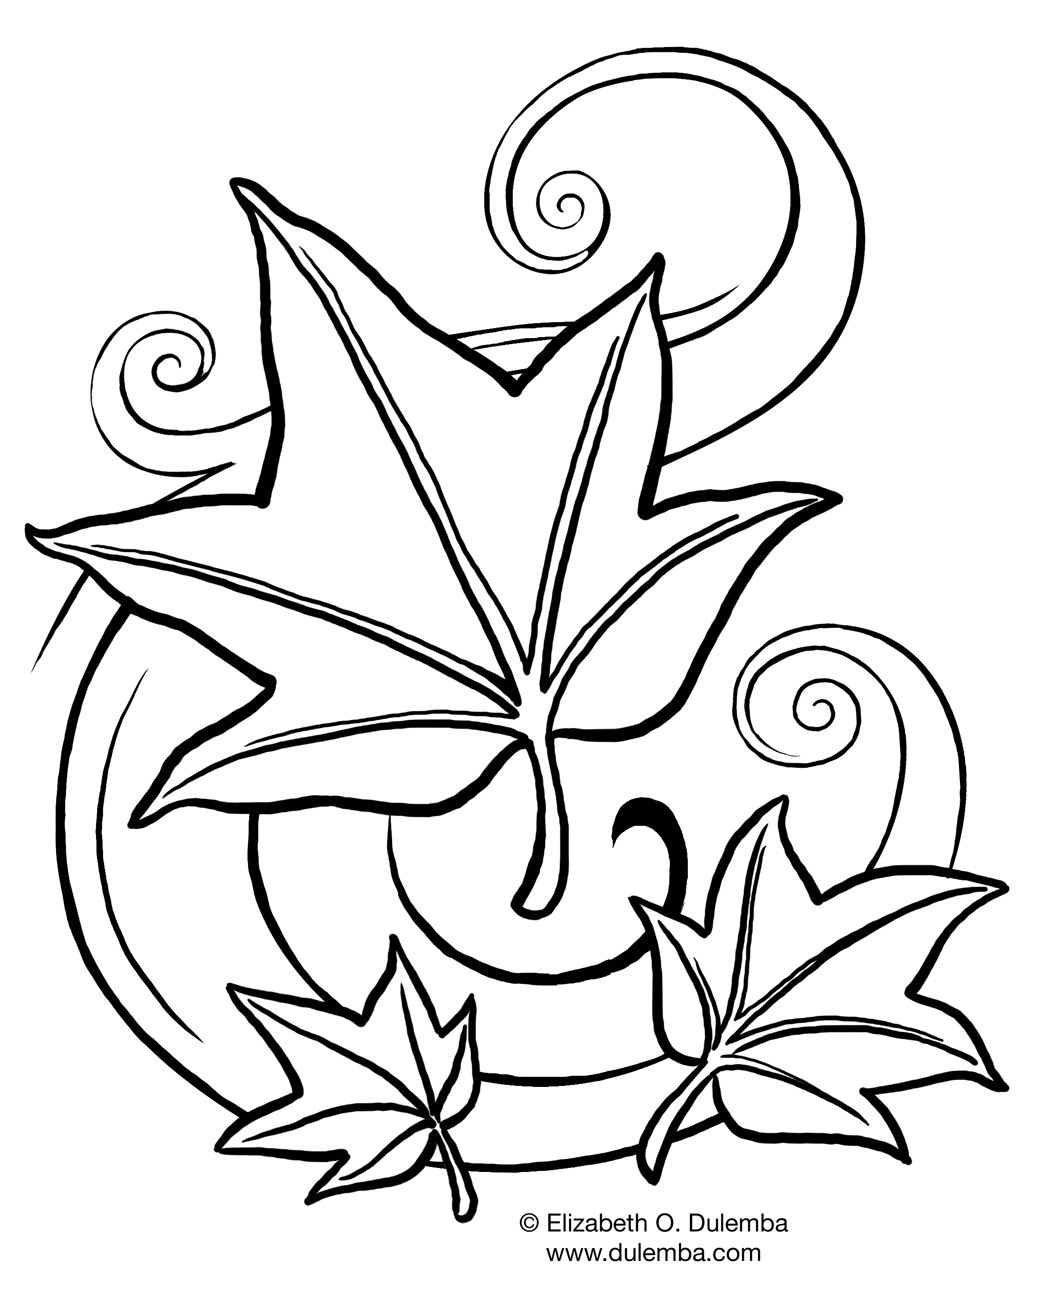 Fascinating Fall Coloring Pages for Kids Disney Tree Autumn Download Of Impressive Maple Leaf Coloring Page Download Free Leaves Printable to Print